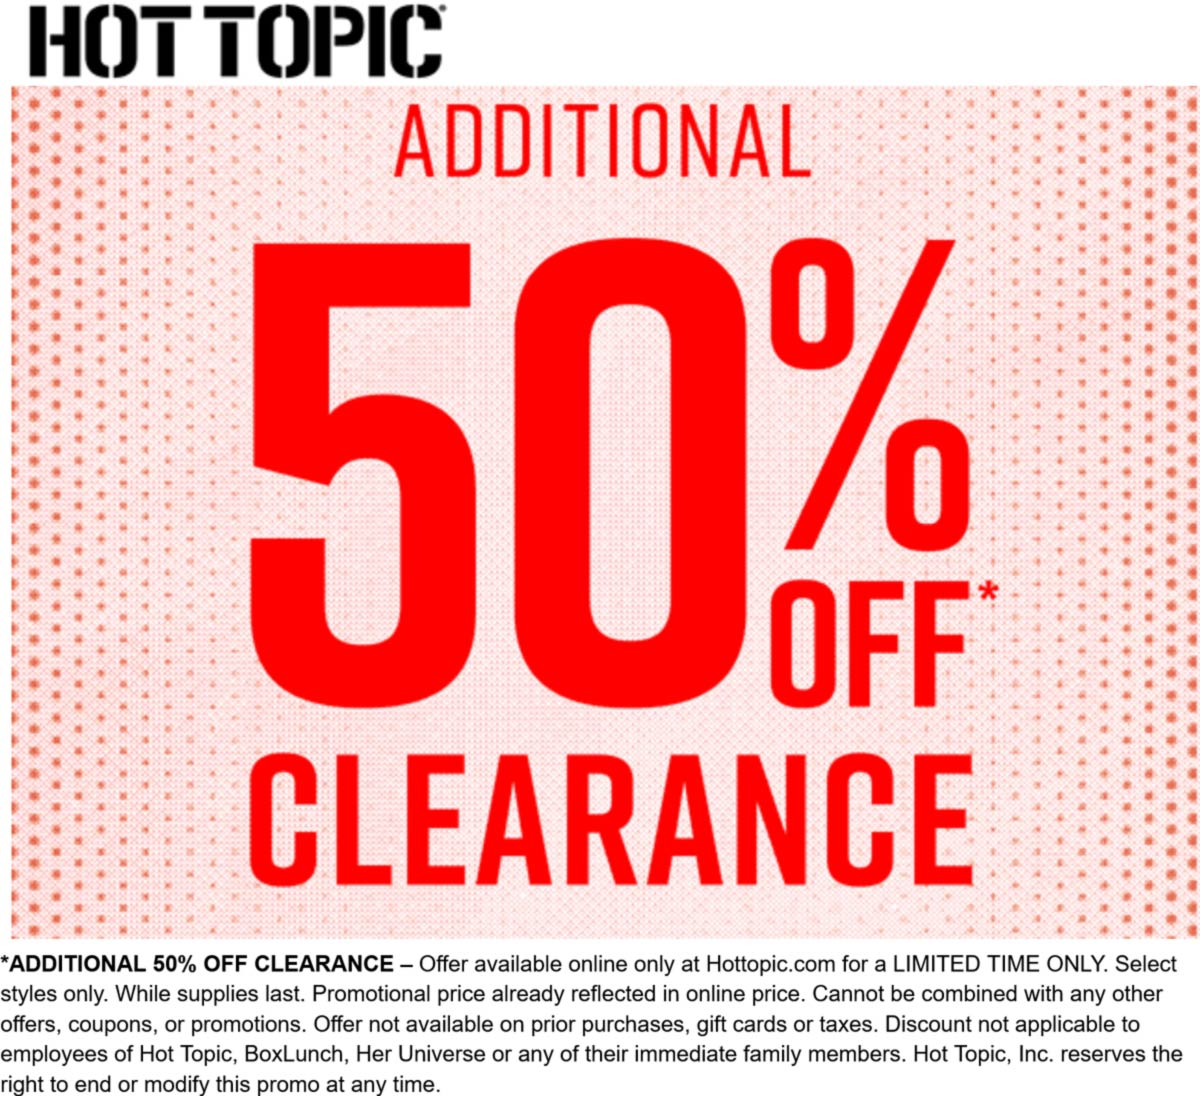 Hot Topic stores Coupon  Extra 50% off clearance online at Hot Topic #hottopic